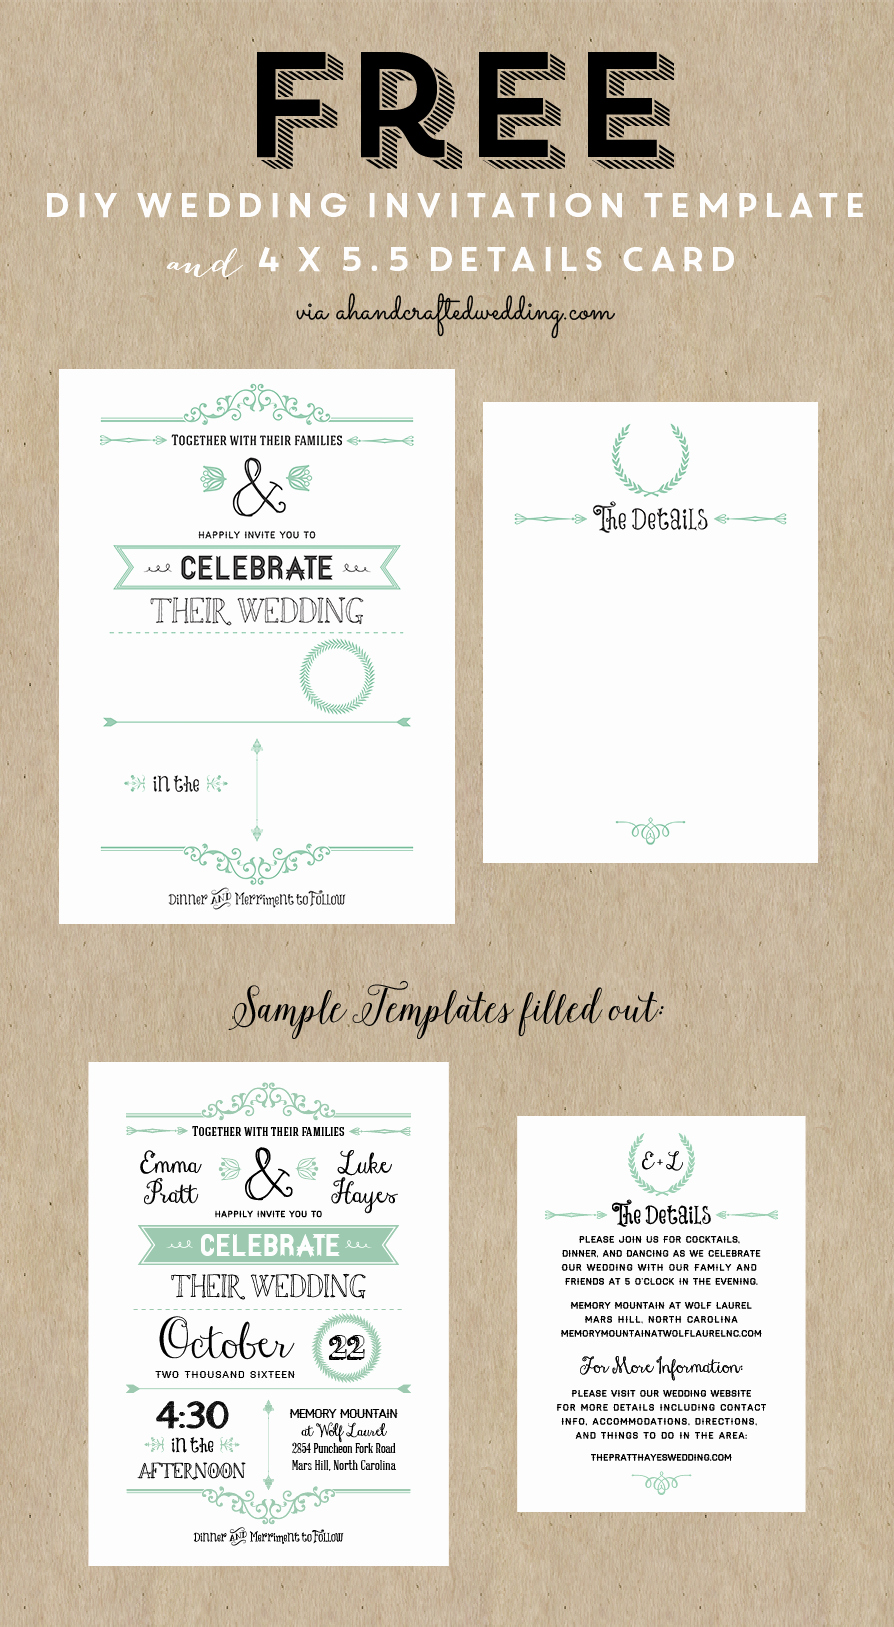 Free Wedding Invitation Printable Templates Luxury Best 25 Free Wedding Invitation Templates Ideas On